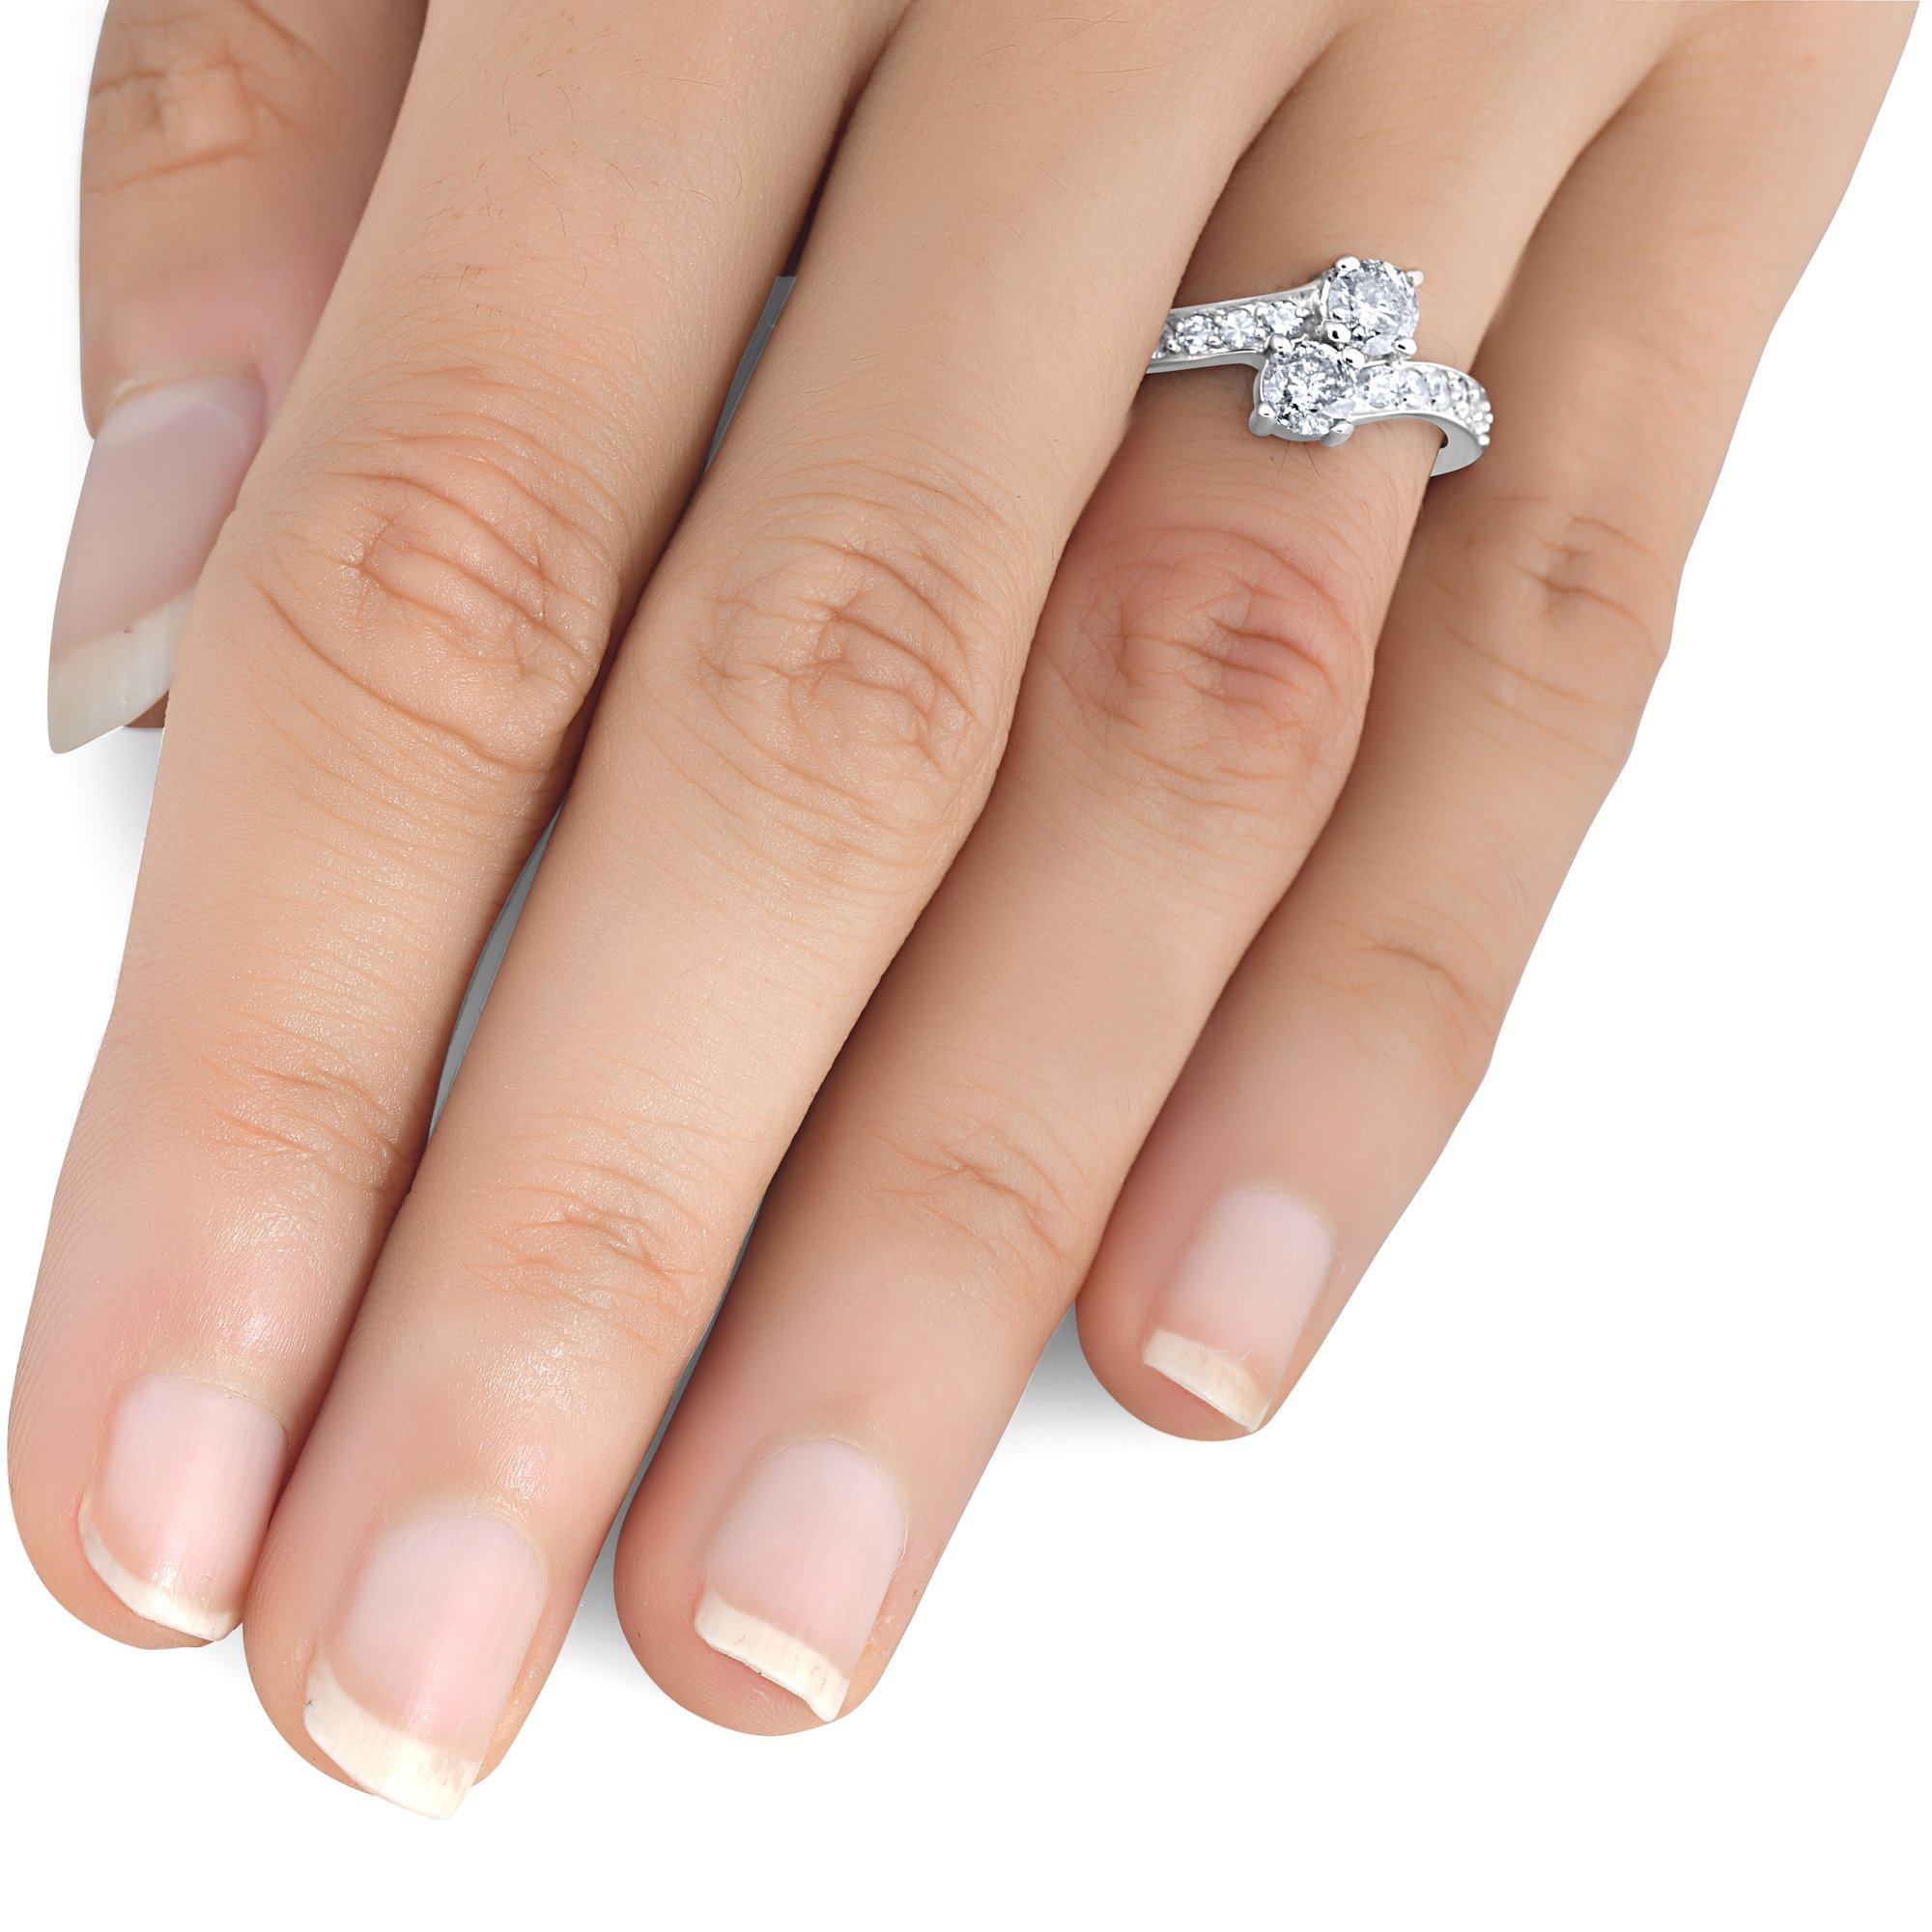 1 Carat Forever Us Diamond Two Stone Engagement Ring 10K White Gold by Pompeii3 Inc. (Image #3)